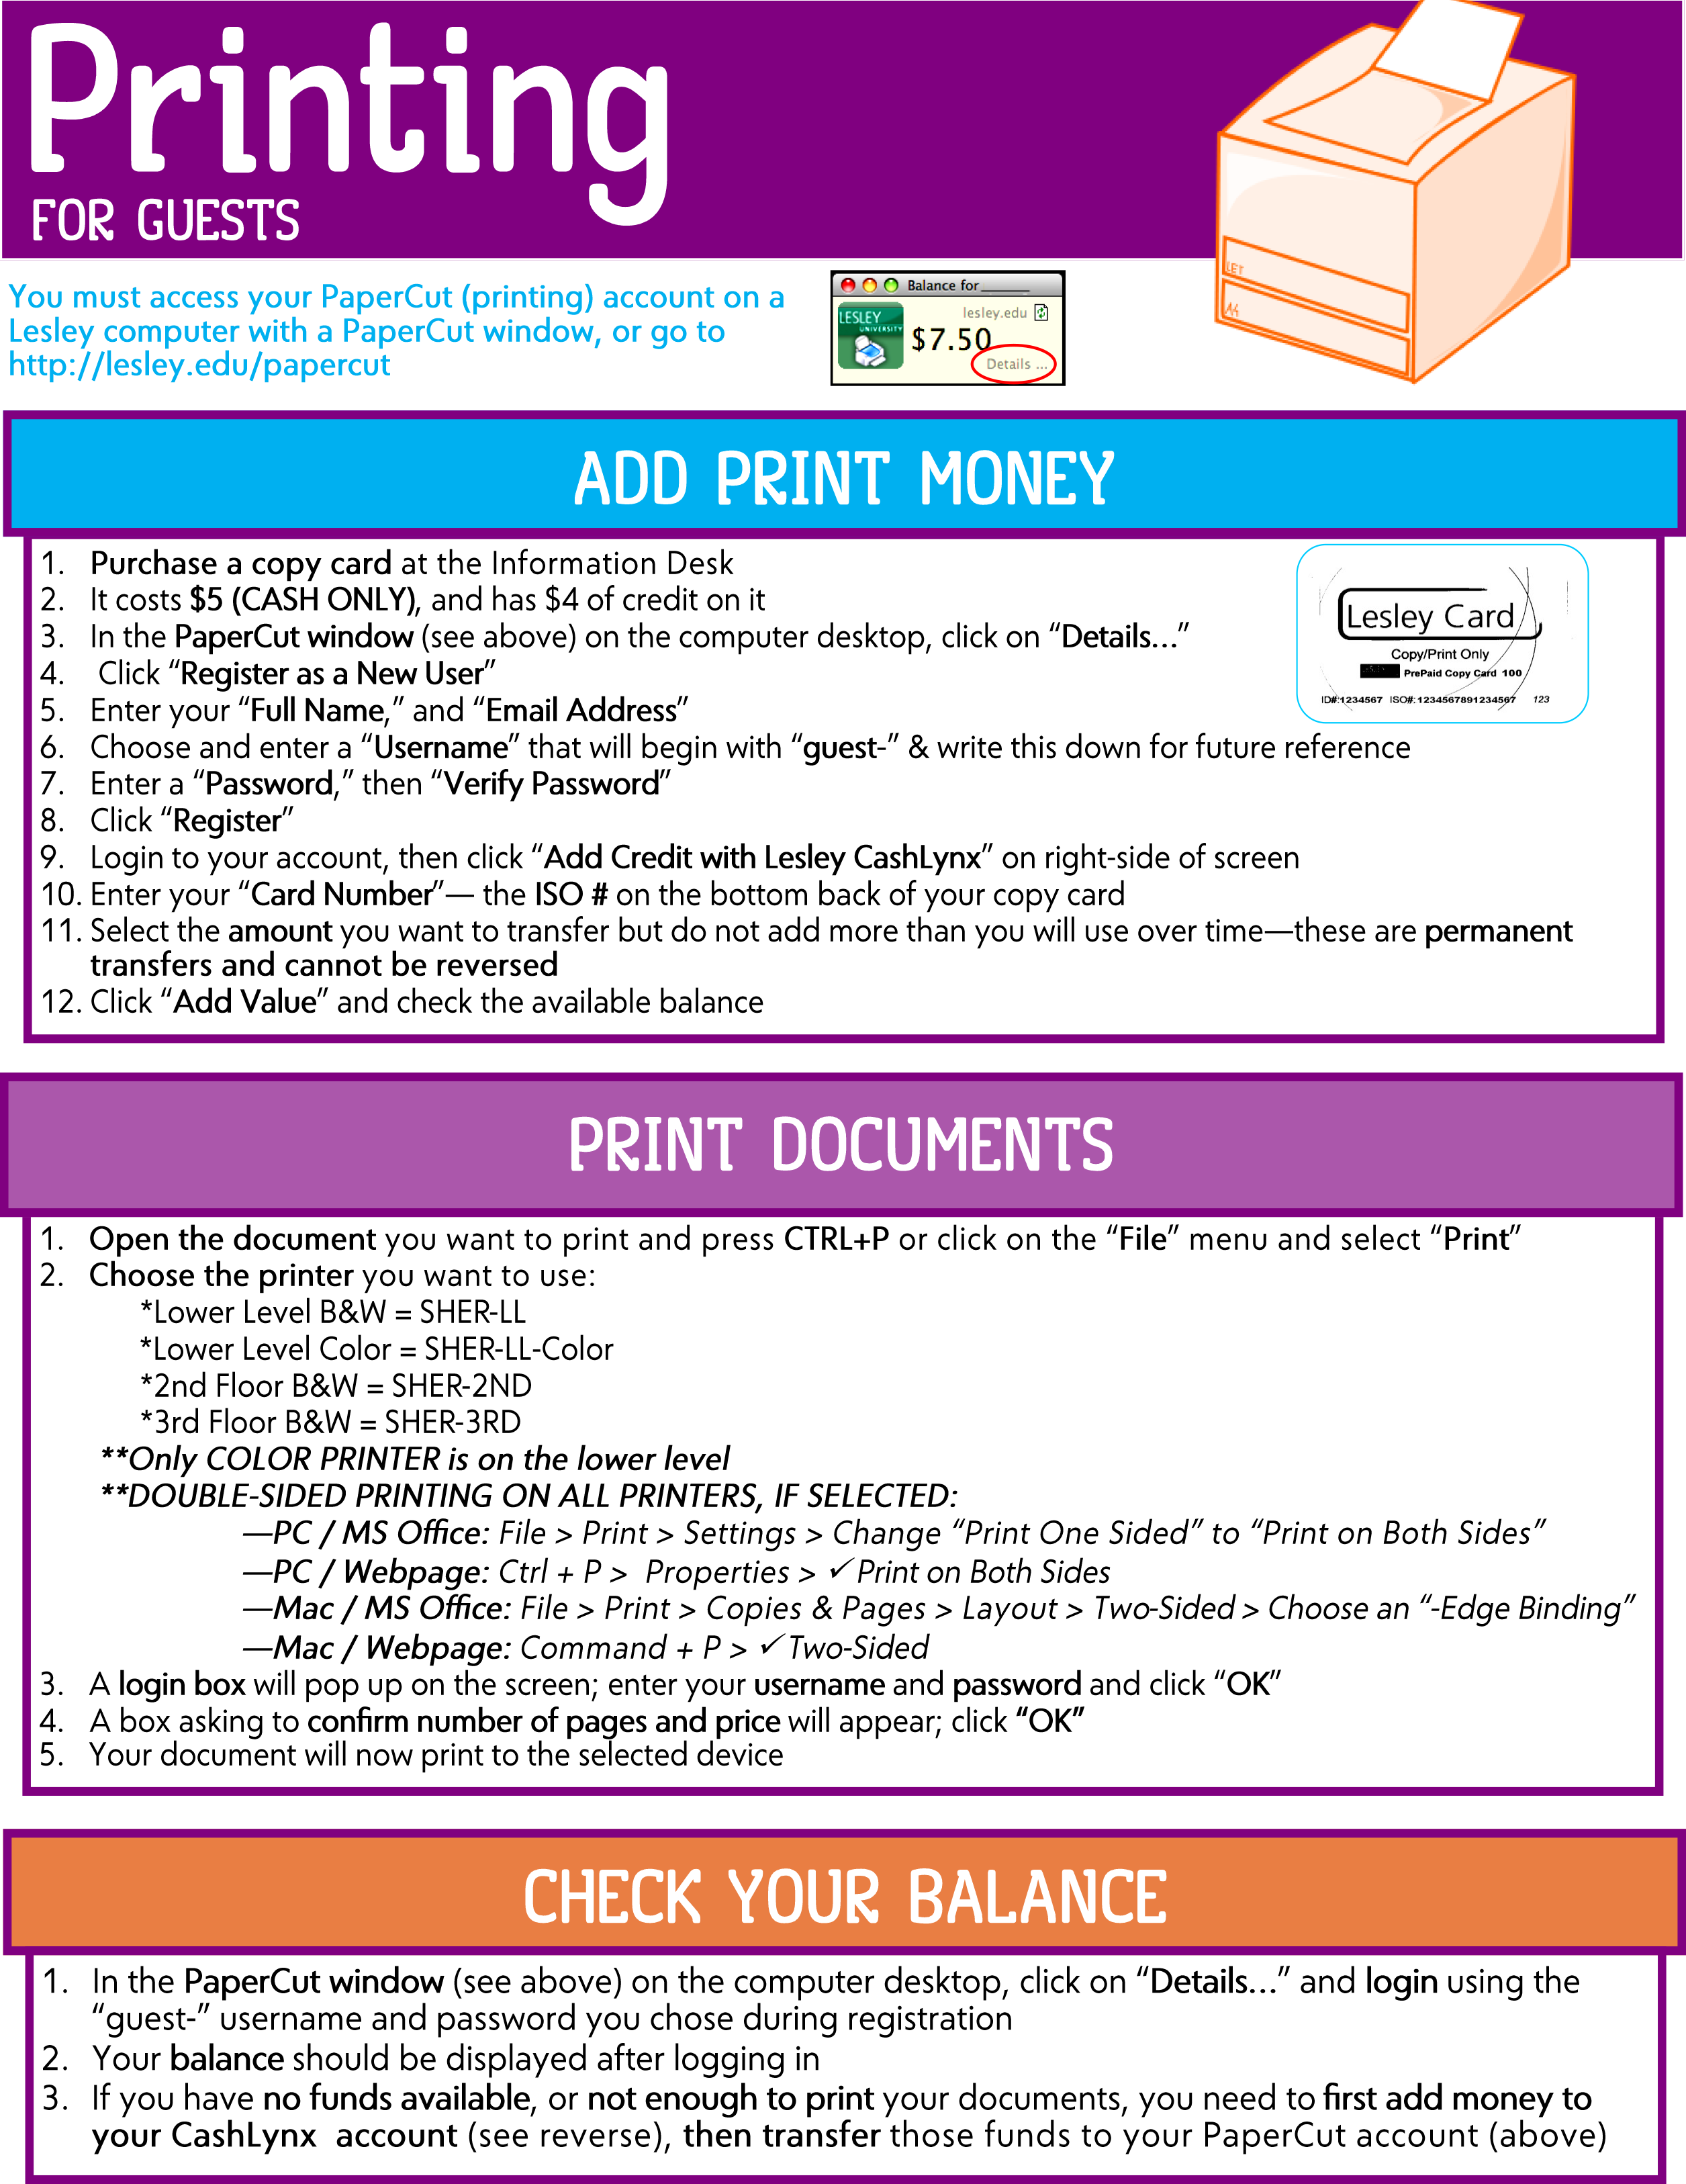 Image is a handout with instructions for guests who wish to use the printers. You can receive additional assistance with printing at the Information Desk.